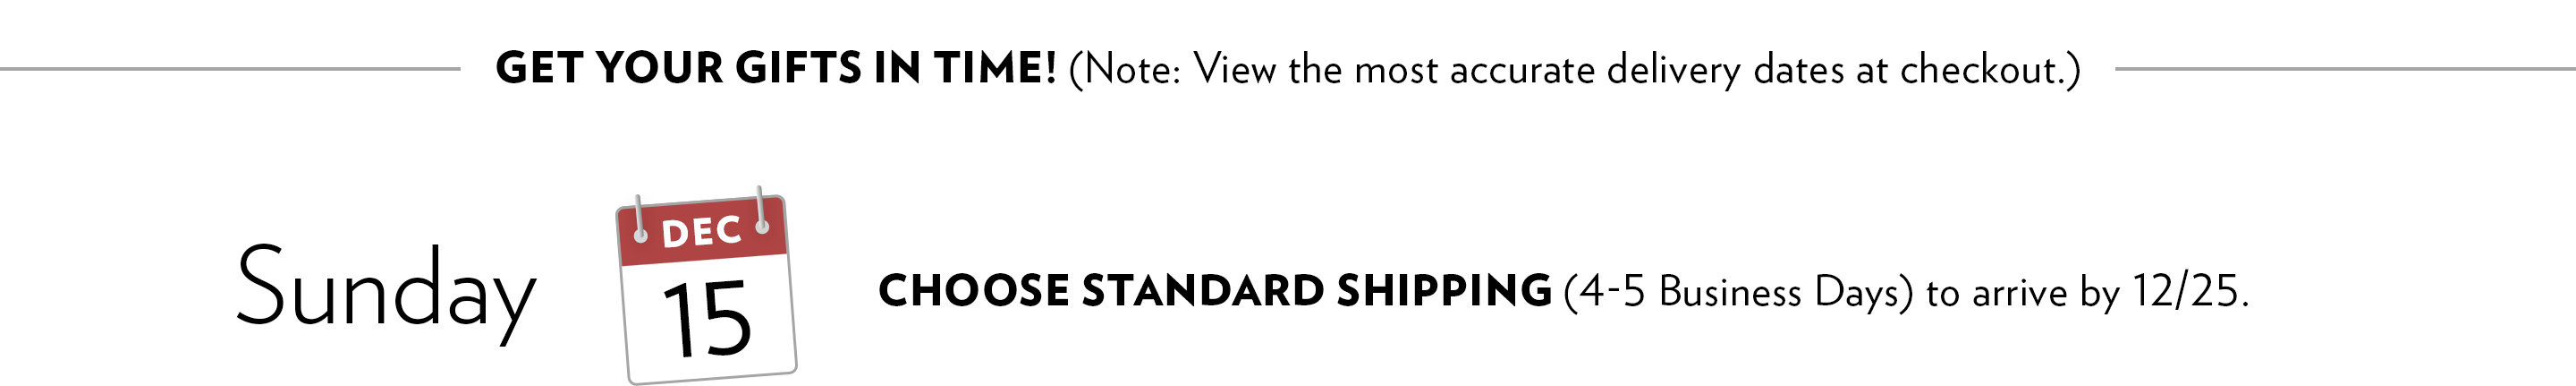 On December 15 choose standard shipping to arrive by 12/25.